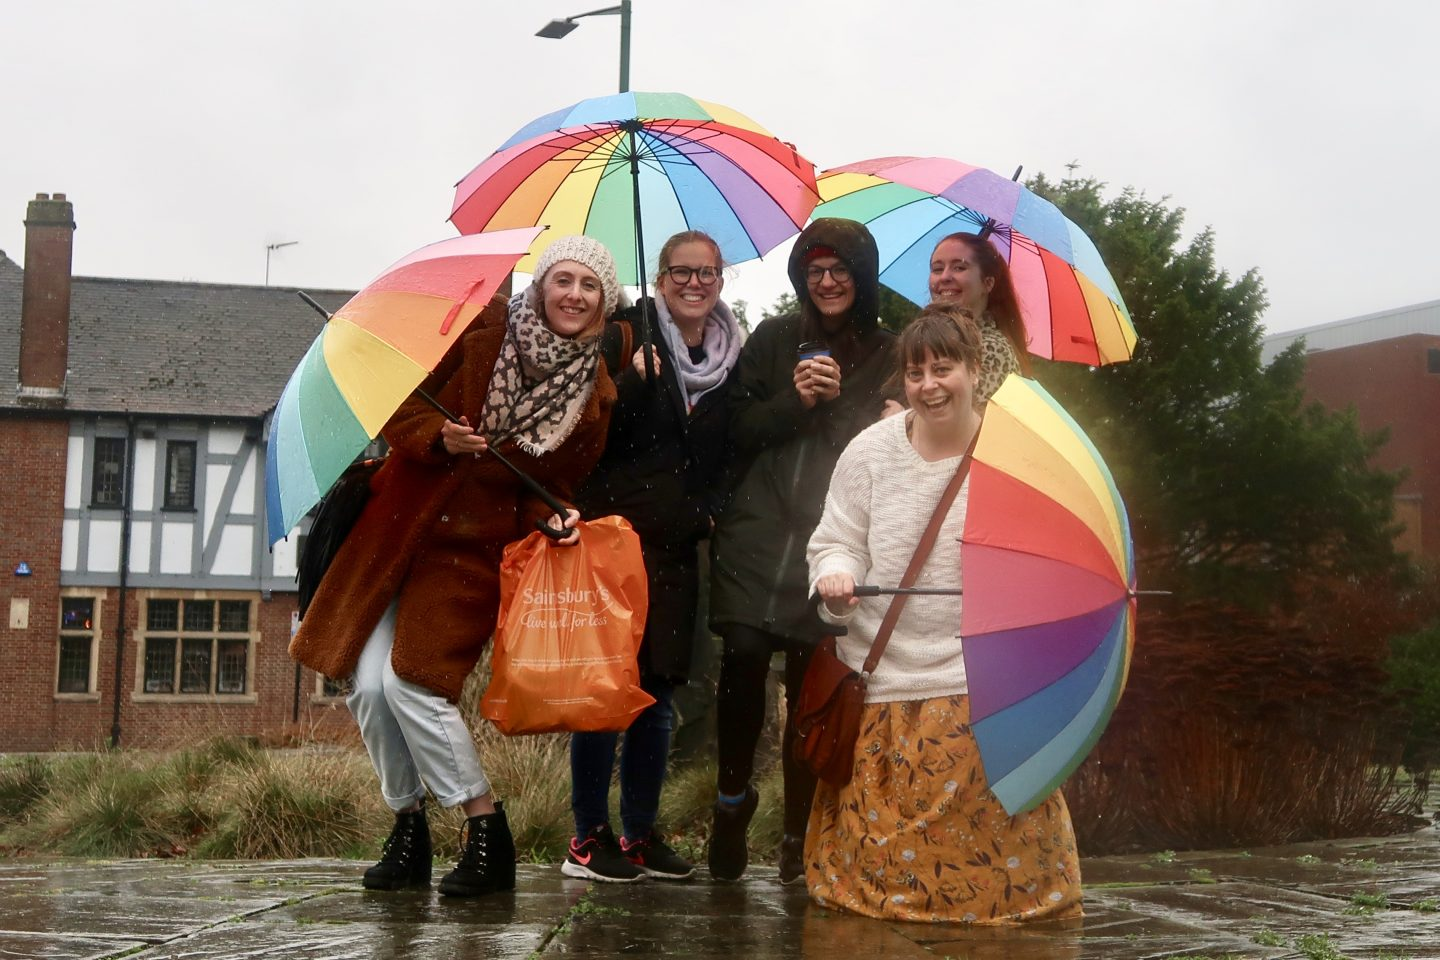 A group of women stand in the rain with rainbow umbrellas